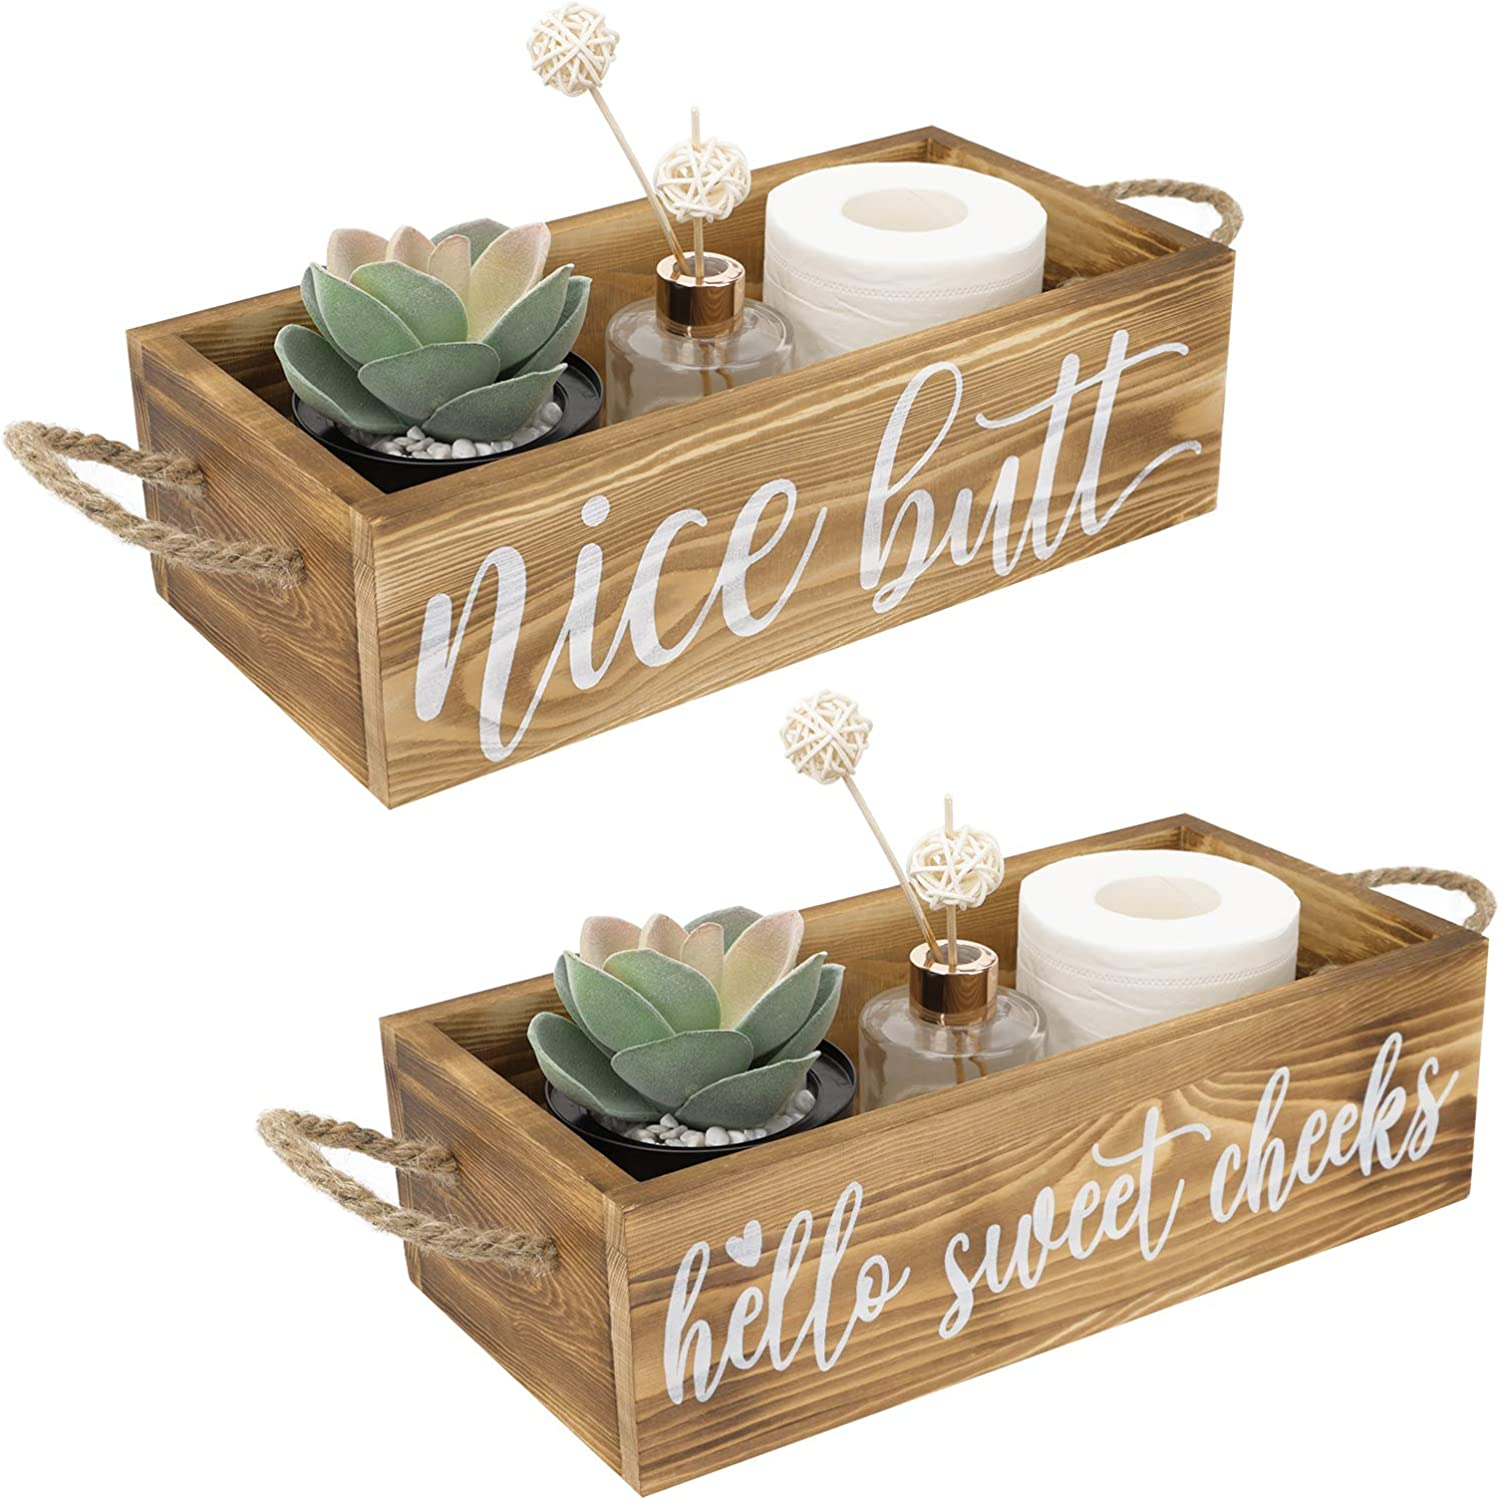 Luxspire Bathroom Decor Box, 2 Side Farmhouse Wooden Toilet Paper Tissue Holder Storage Tray with Funny Sayings, Toilet Tank Topper Organizer for Plants, Diaper Rustic Bathroom Signs Decorer